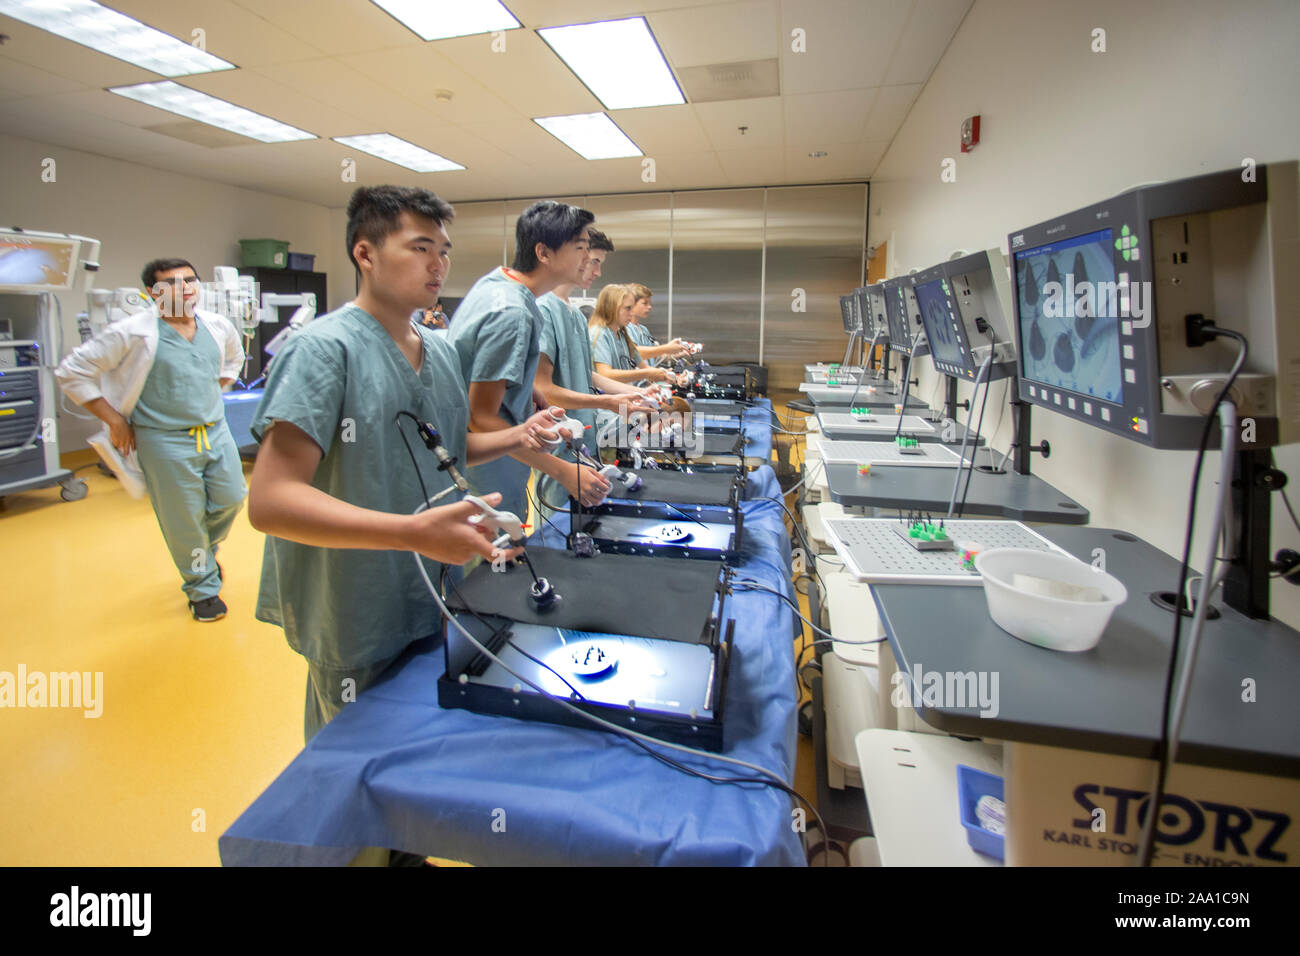 Watching their progress on monitors at a summer surgery workshop, teenagers in medical scrubs practice remote control laproscopic surgery techniques under a doctor's watchful eye at an Orange, CA, hospital. Stock Photo